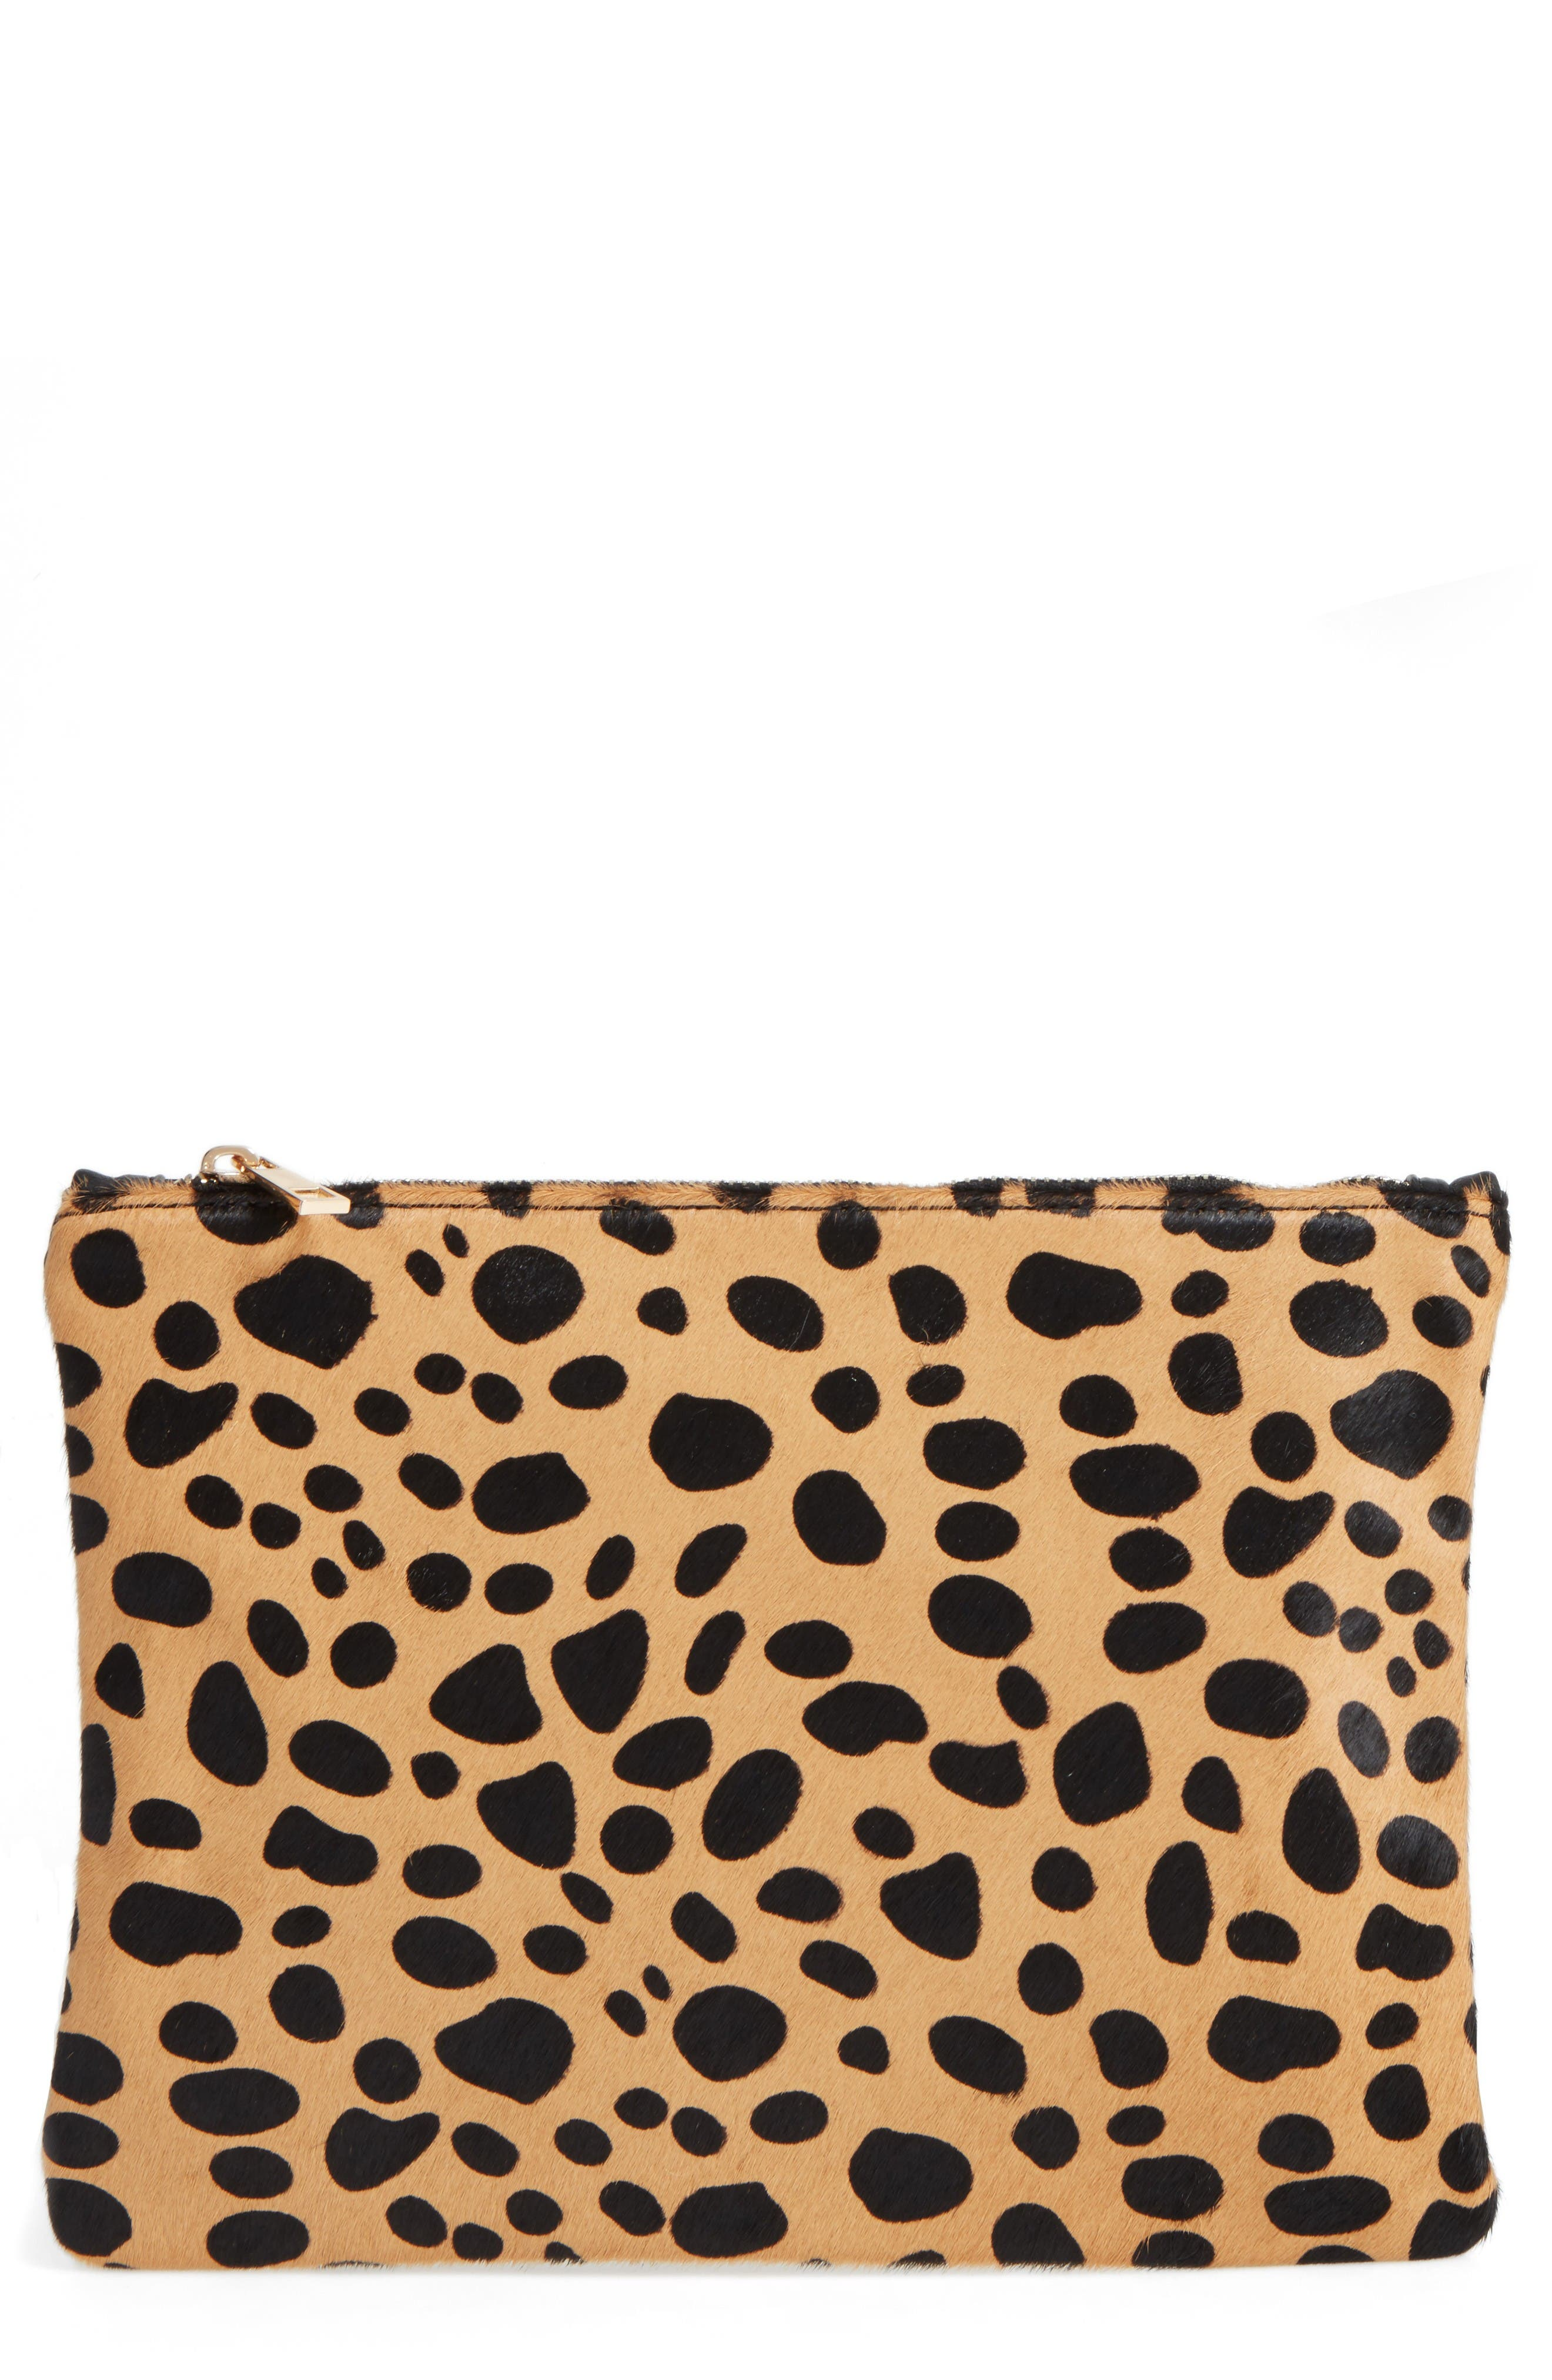 Alternate Image 1 Selected - BP. Leopard Print Genuine Calf Hair Clutch